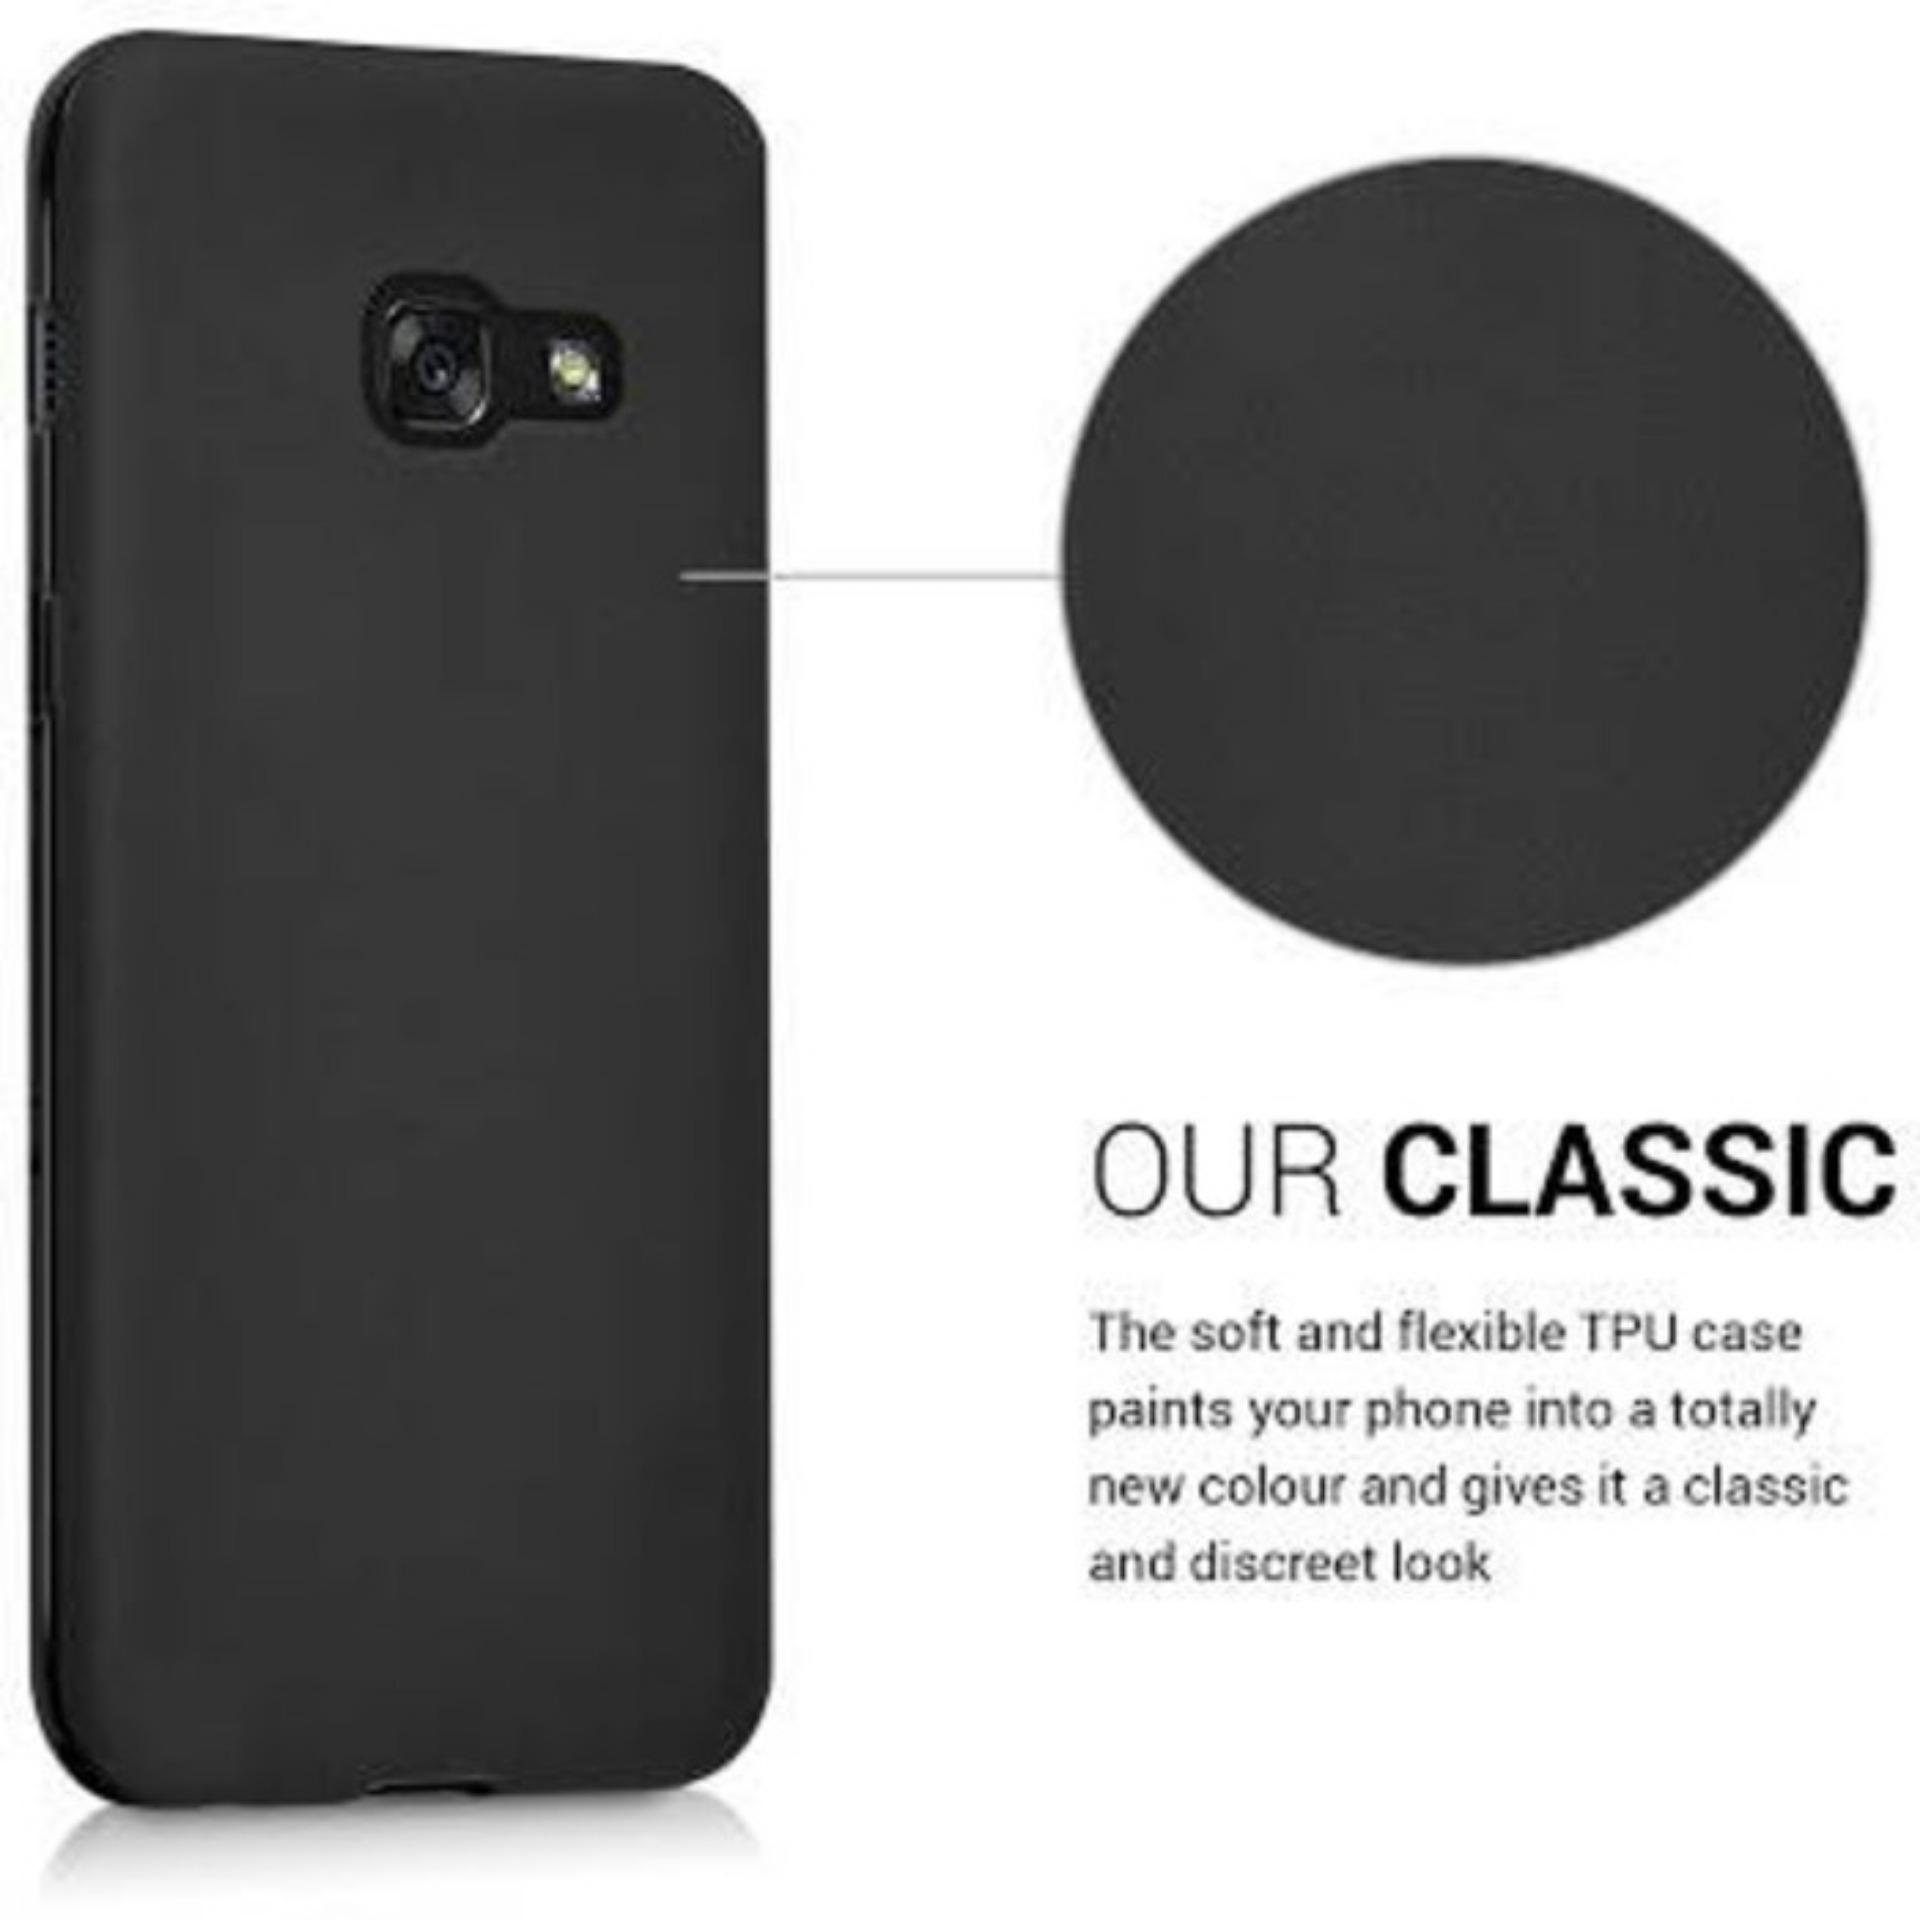 LOLLYPOP TPU Soft ECO Case Samsung Galaxy J1 Ace - Black/Hitam matte softcase silicon backcase matte jelly backcover case hp casing handphone ume baby skin soft touch